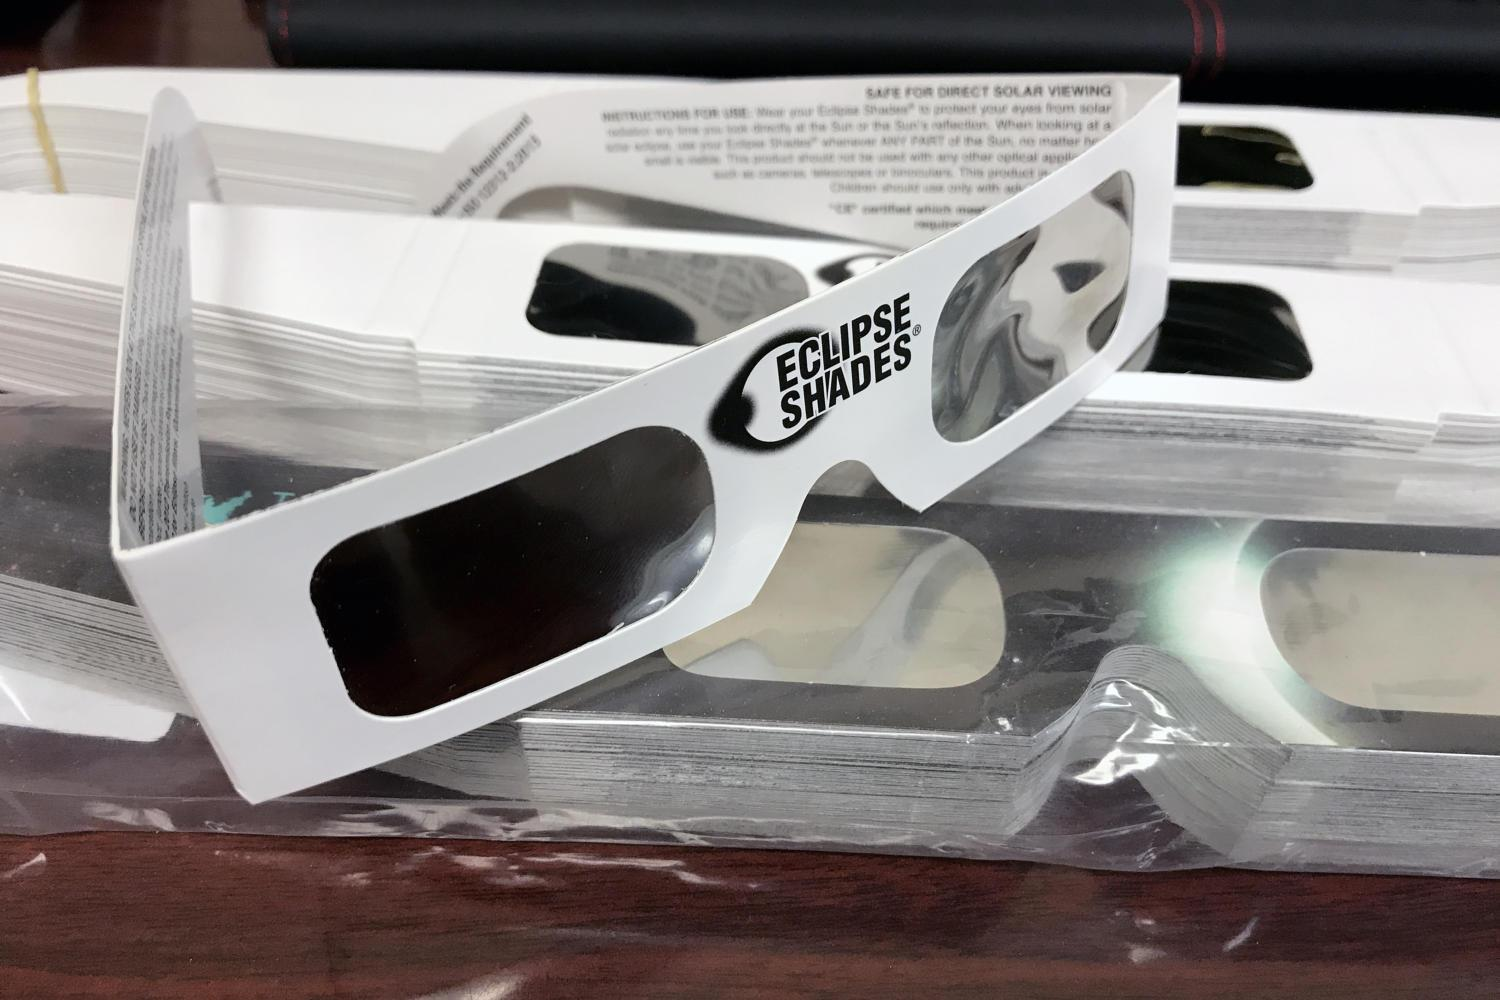 The school will provide eye protection for viewing Monday's total solar eclipse. Students will be dismissed in rotations between 12:40-1:30 p.m.